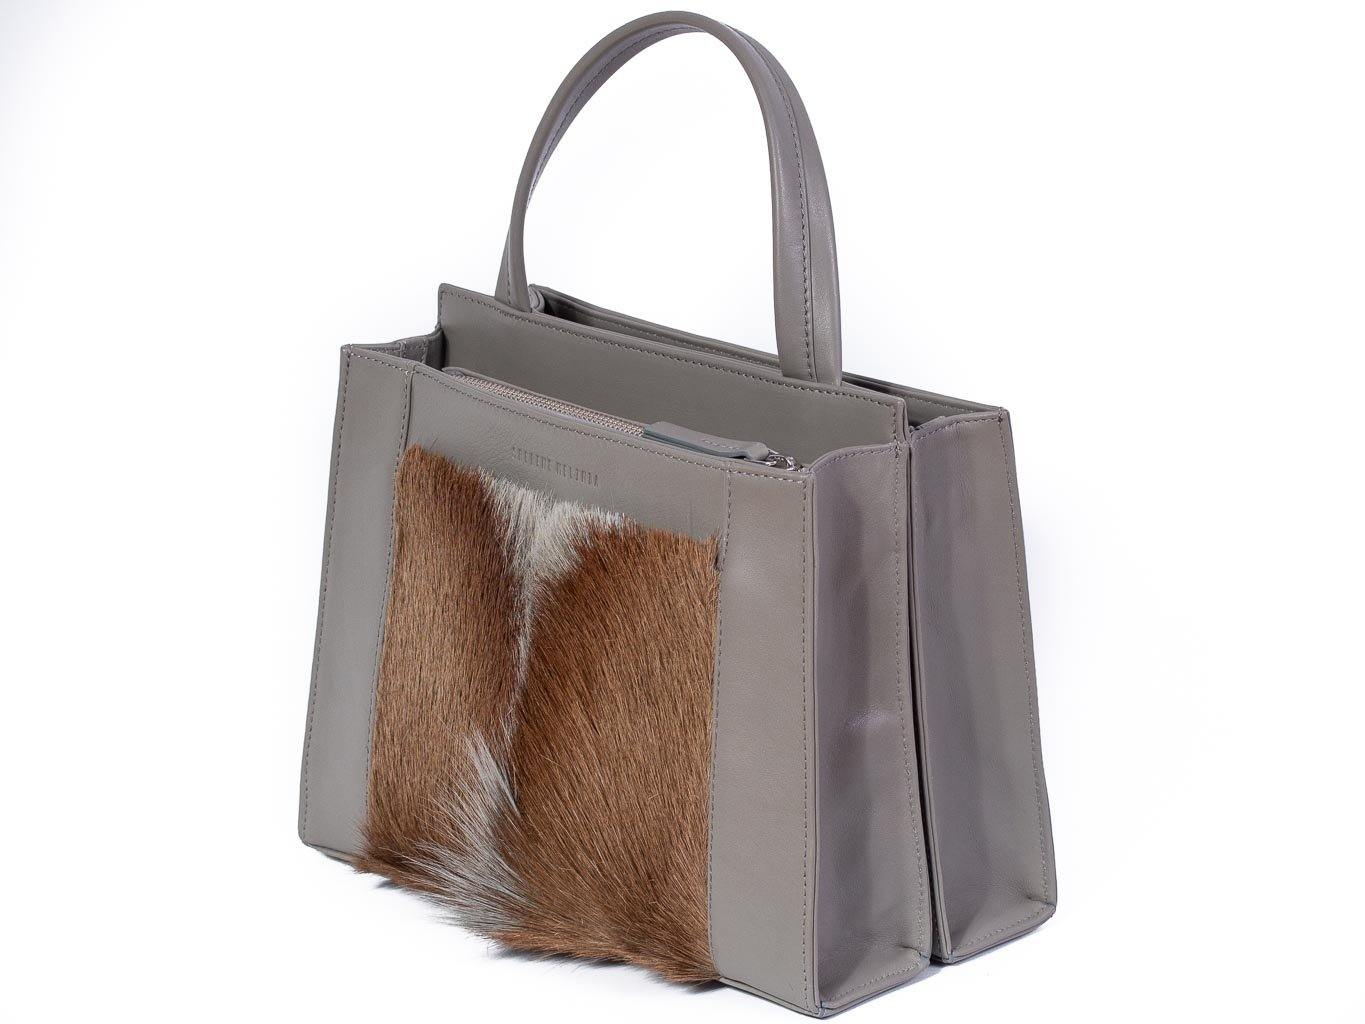 Top Handle Springbok Handbag in Slate Grey with a fan feature by Sherene Melinda front